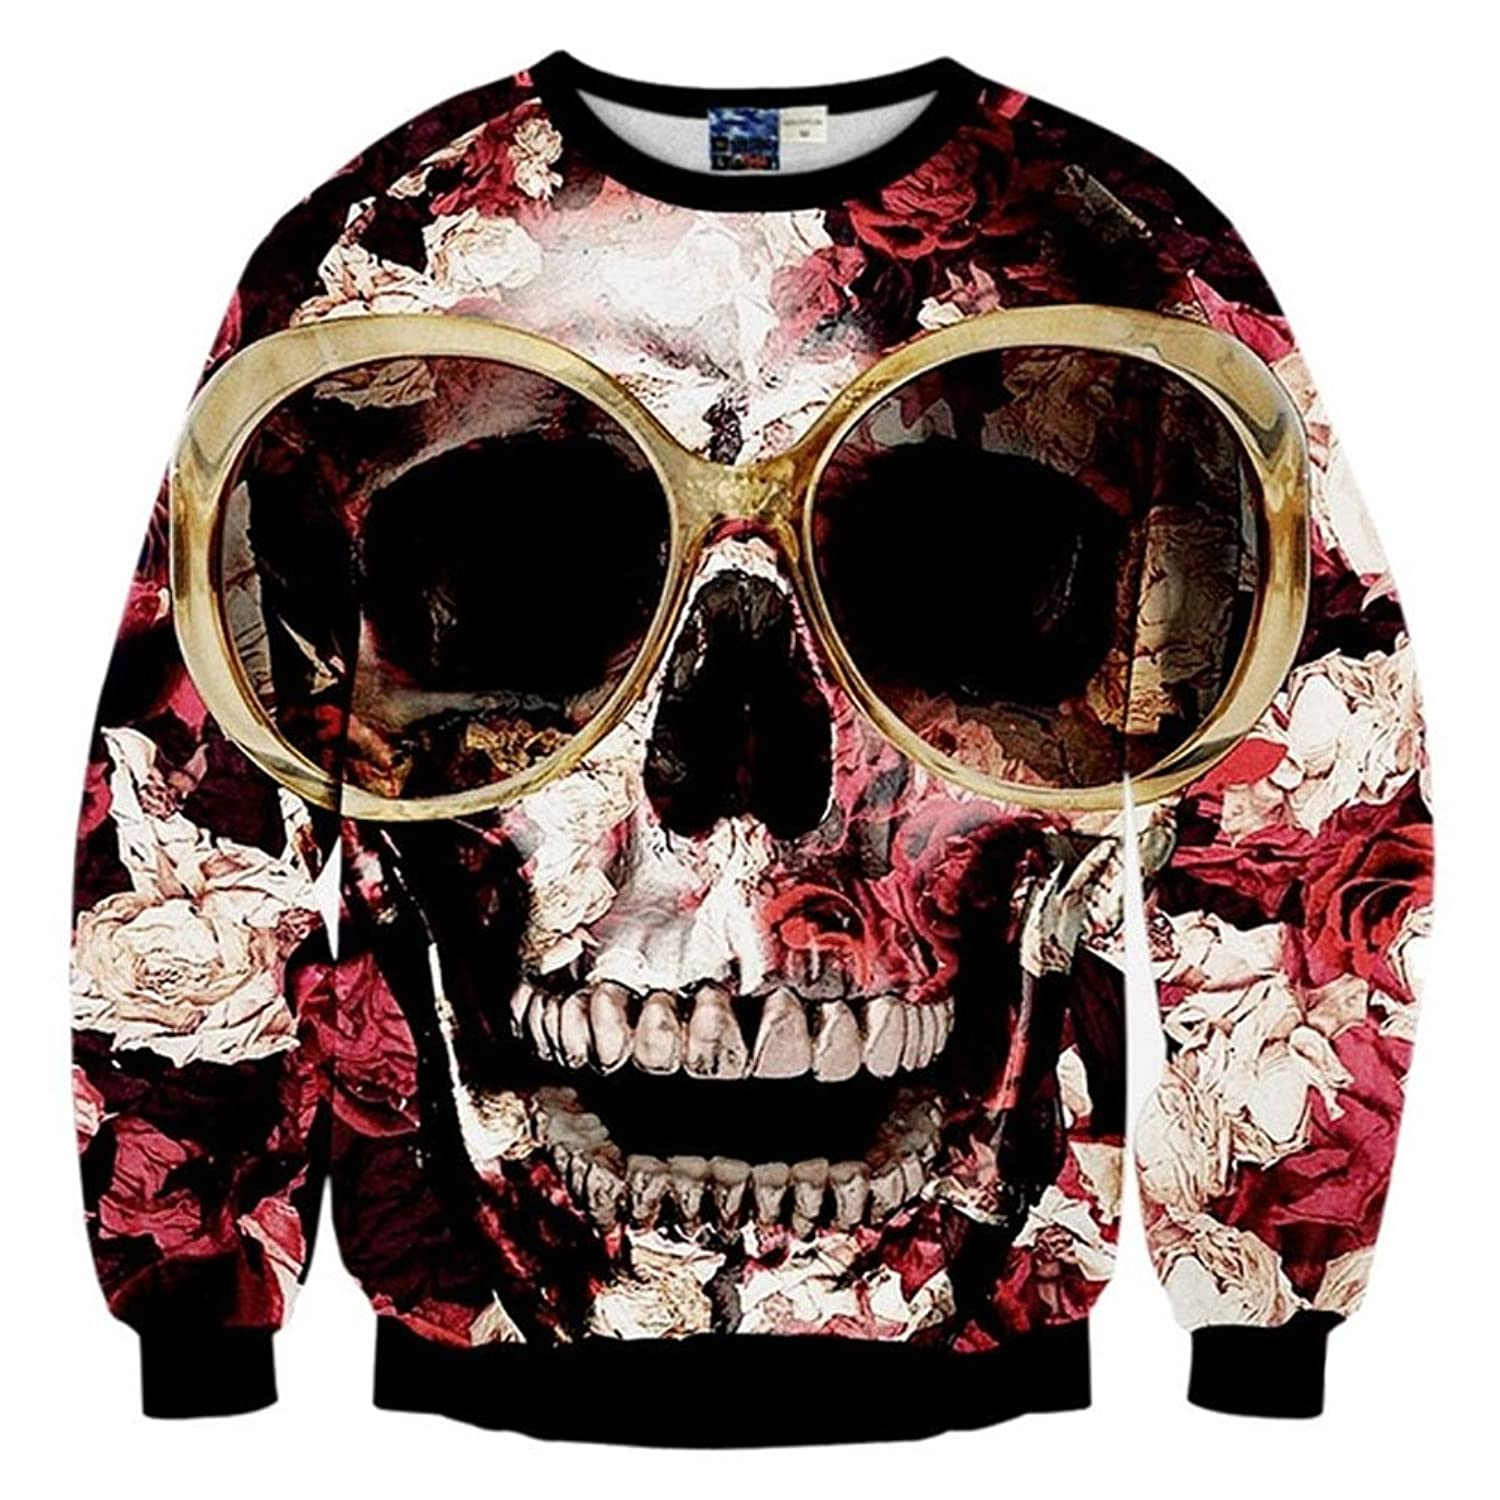 Chiclook Cool SWEATER レディース B07635KJVC  Glasses Roses Skull Large